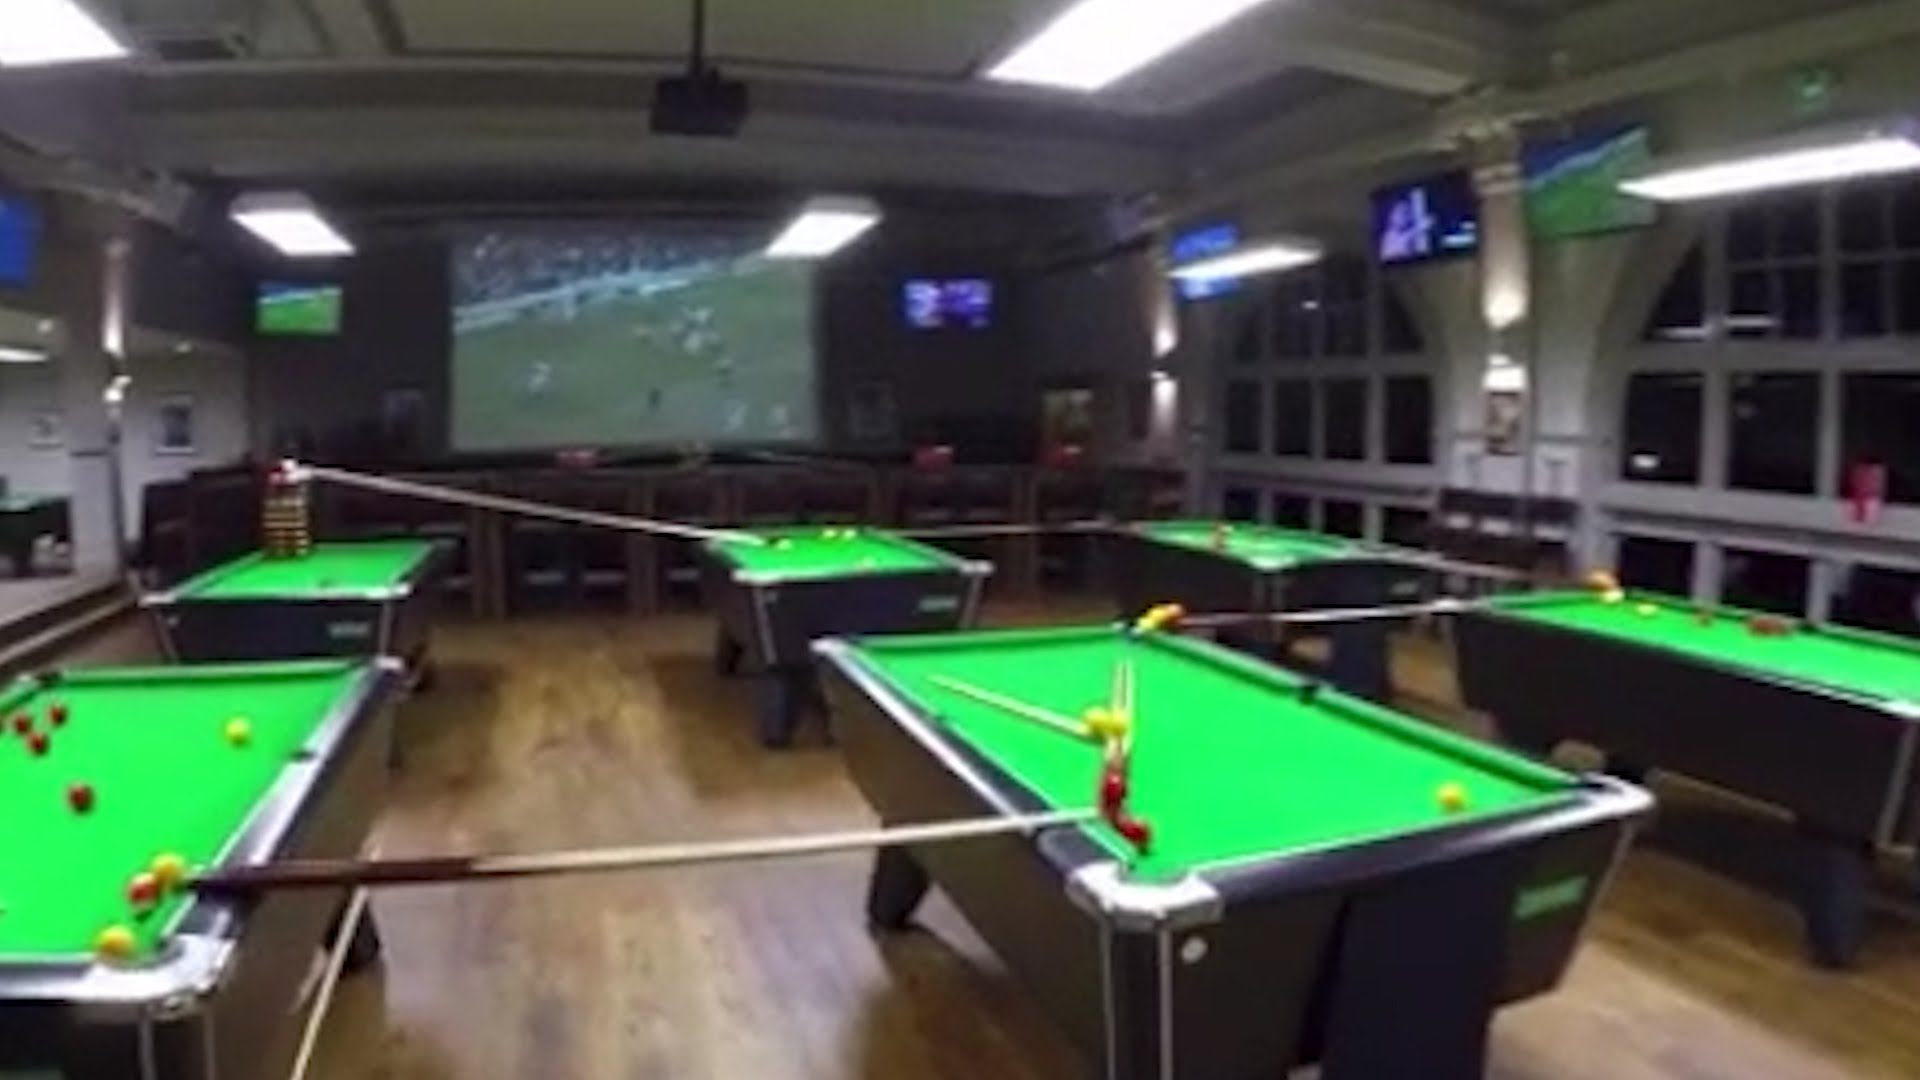 Incredible rube goldberg trick shot that spans multiple billiards incredible rube goldberg trick shot that spans multiple billiards tables and two flights of stairs watchthetrailerfo